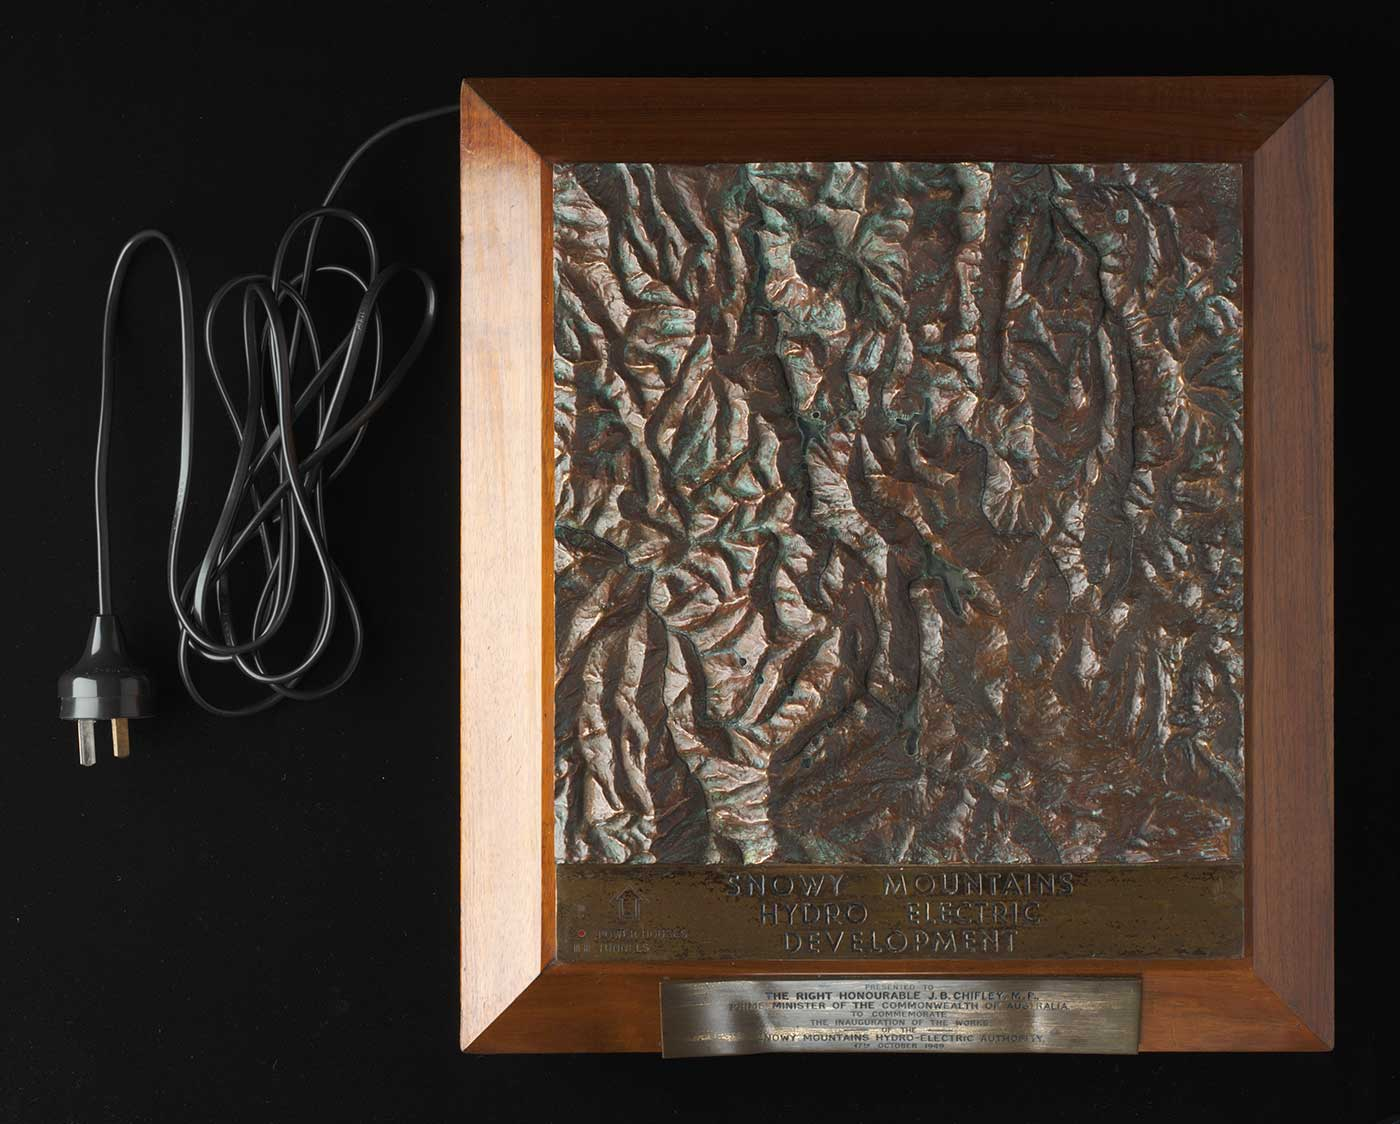 A bronze topographic plaque depicting the topography of the Snowy Mountains, mounted on a brown wooden plinth with the engraving 'SNOWY MOUNTAINS / HYDRO ELECTRIC / DEVELOPMENT' and a black electrical cord coming from the top left of the plaque - click to view larger image